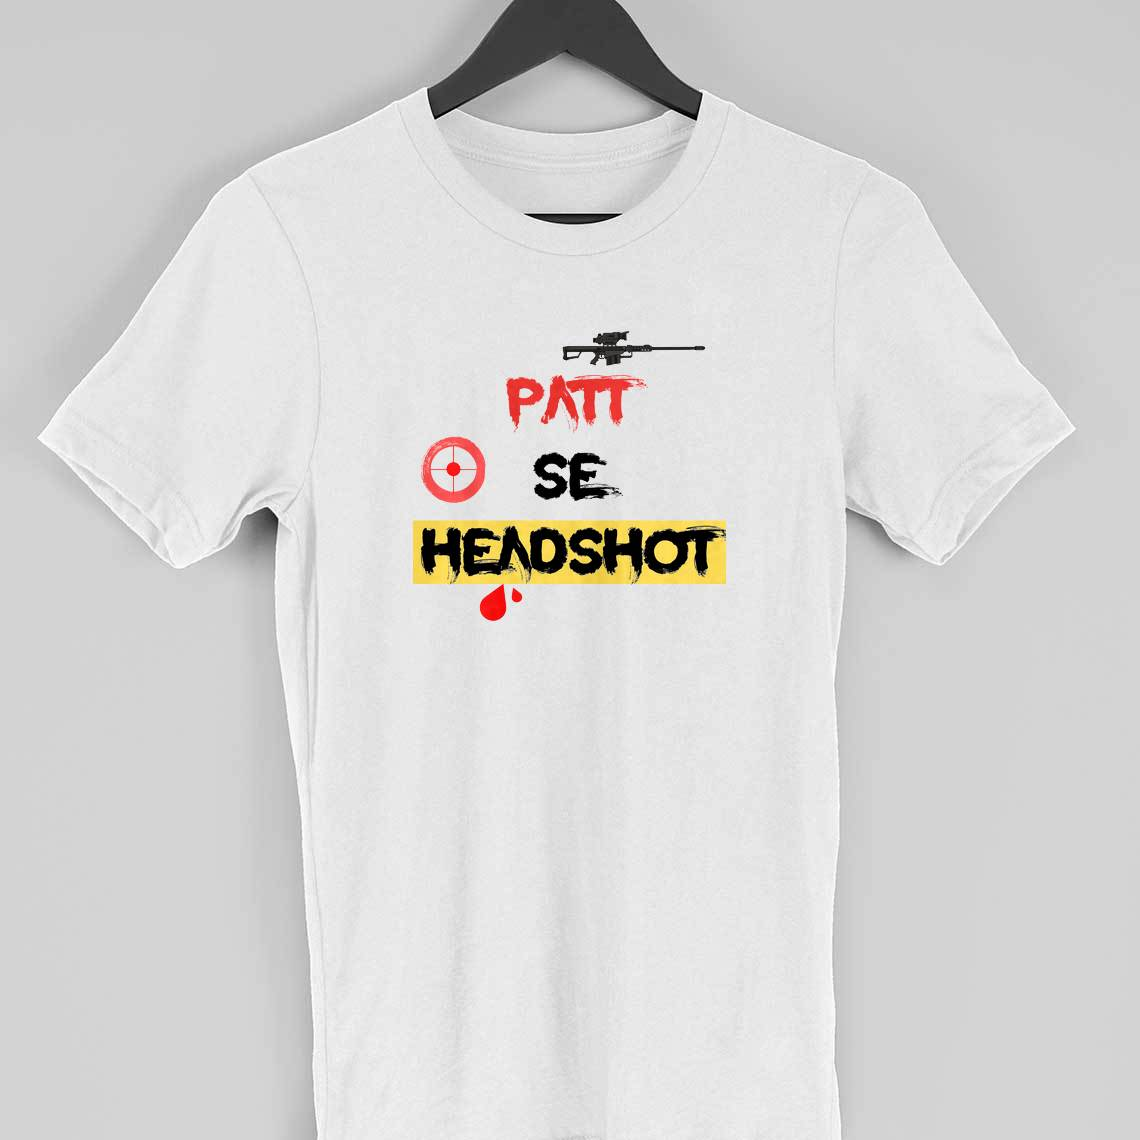 Patt se headshot t-shirt